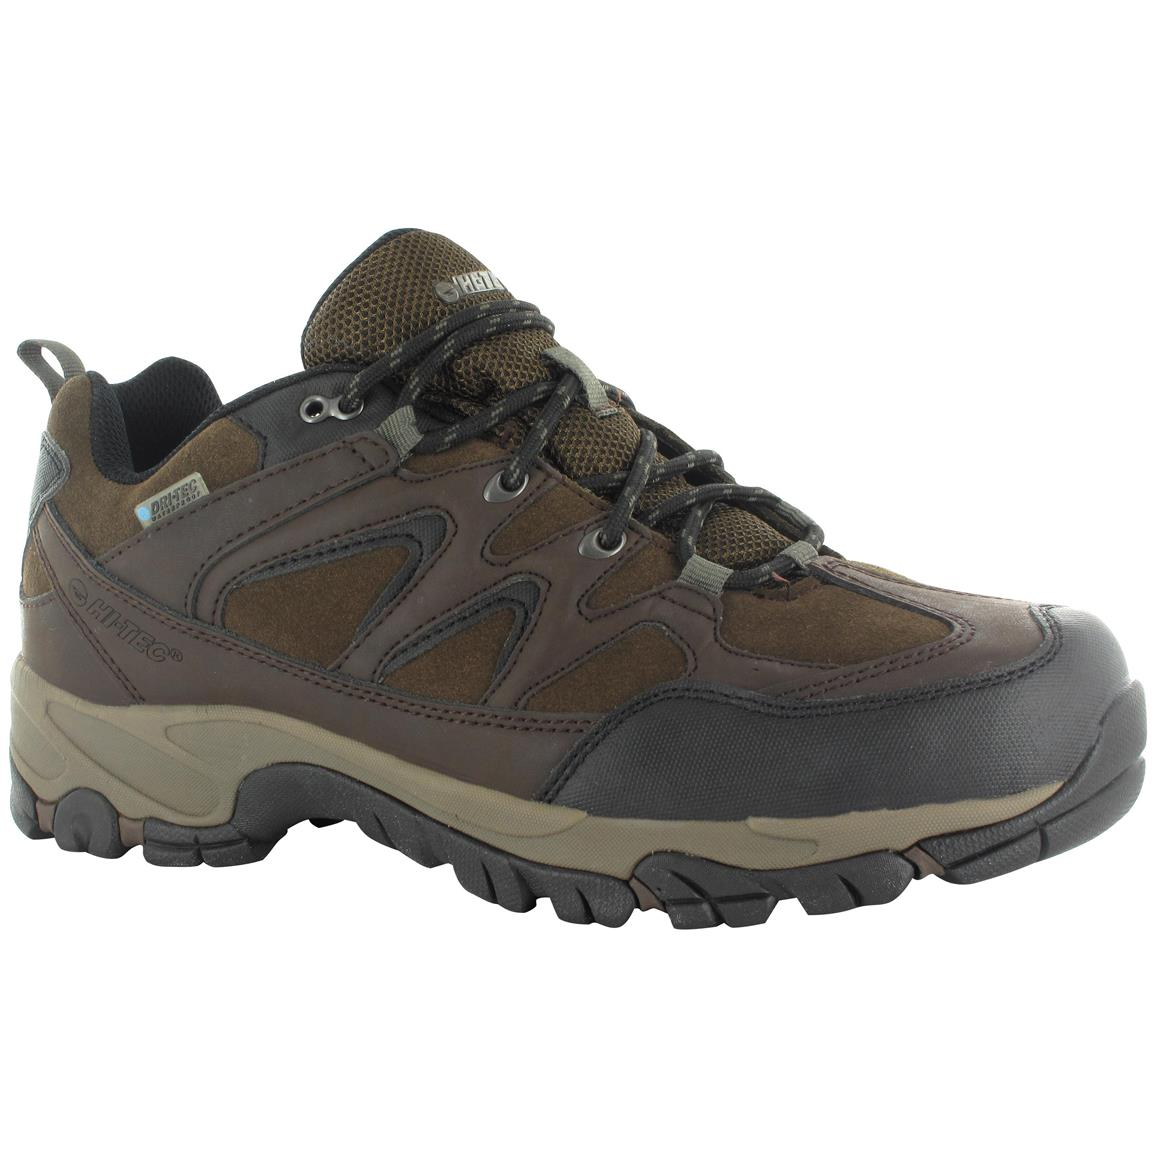 Hi-Tec Altitude Trek Men's Low Hiking Boots, Waterproof, Dark Chocolate